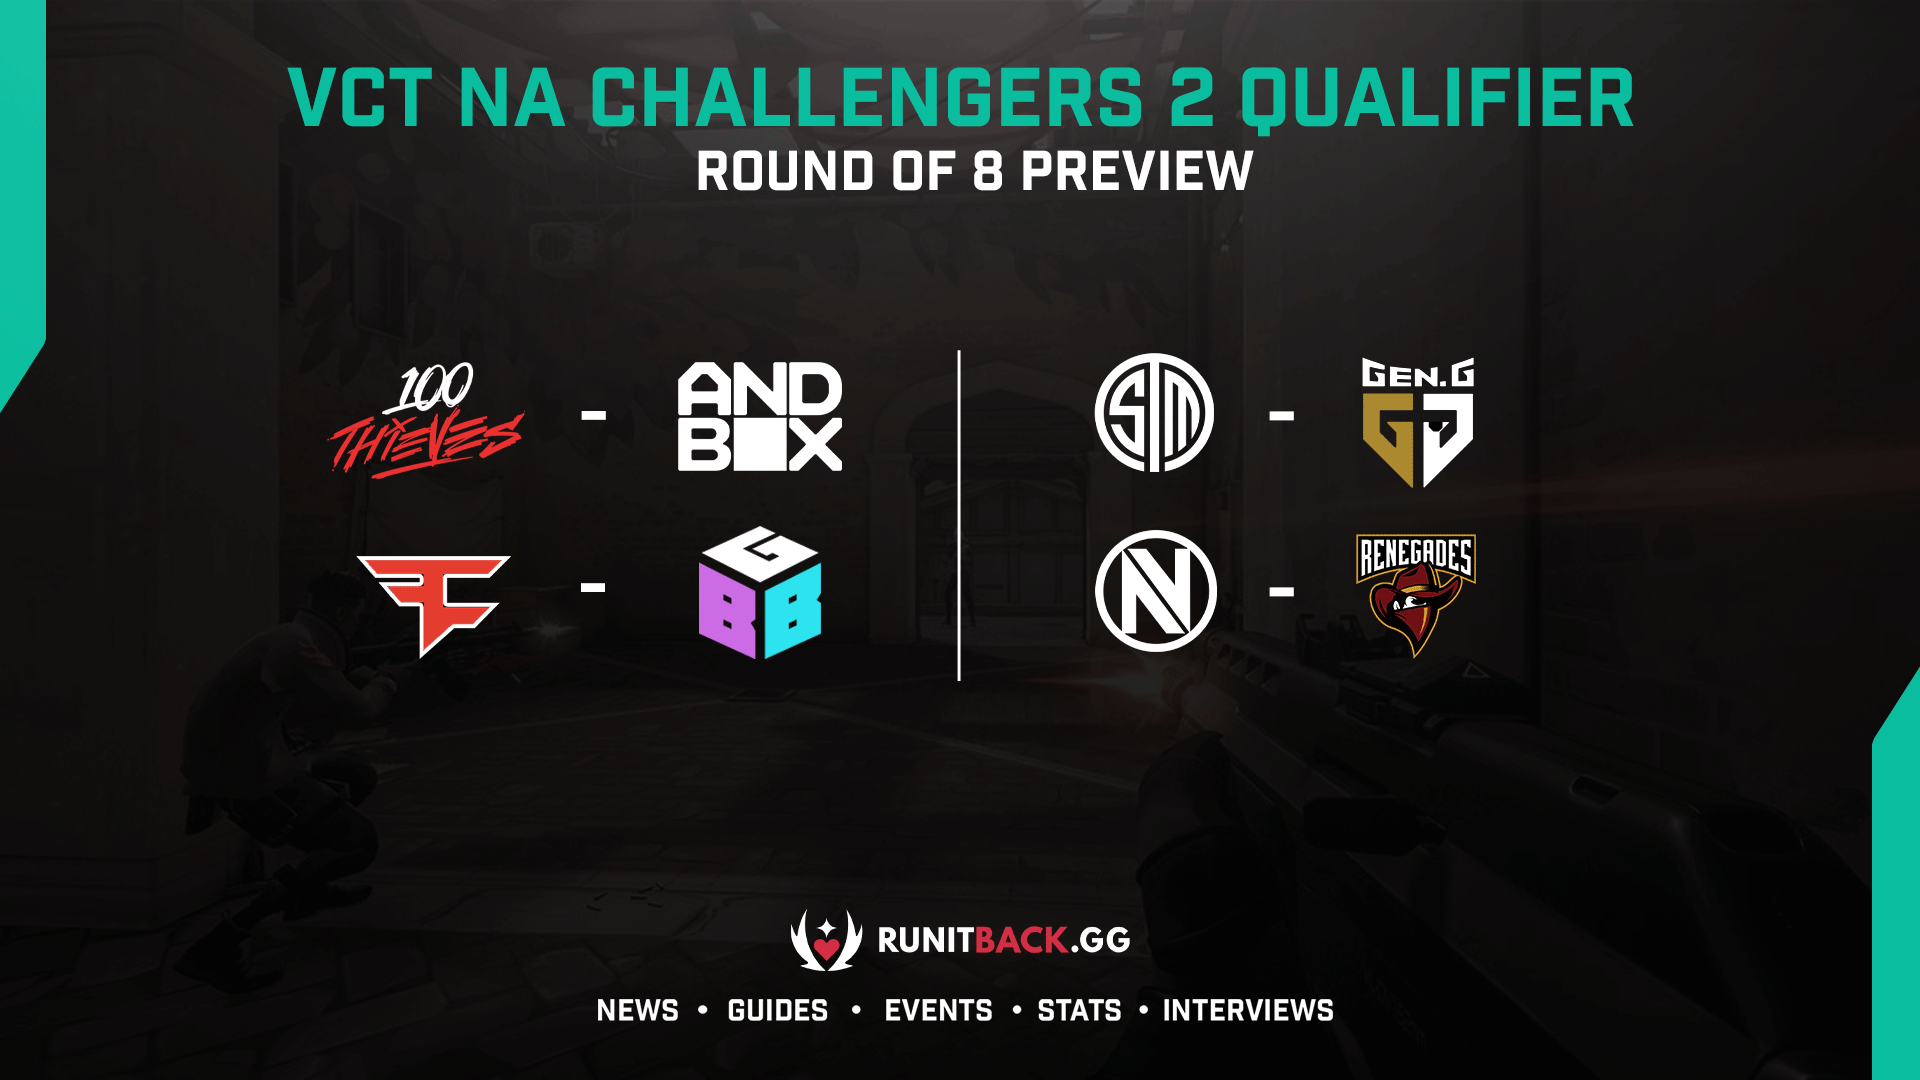 VCT NA Challengers 2 Qualifier: Round of 8 Preview